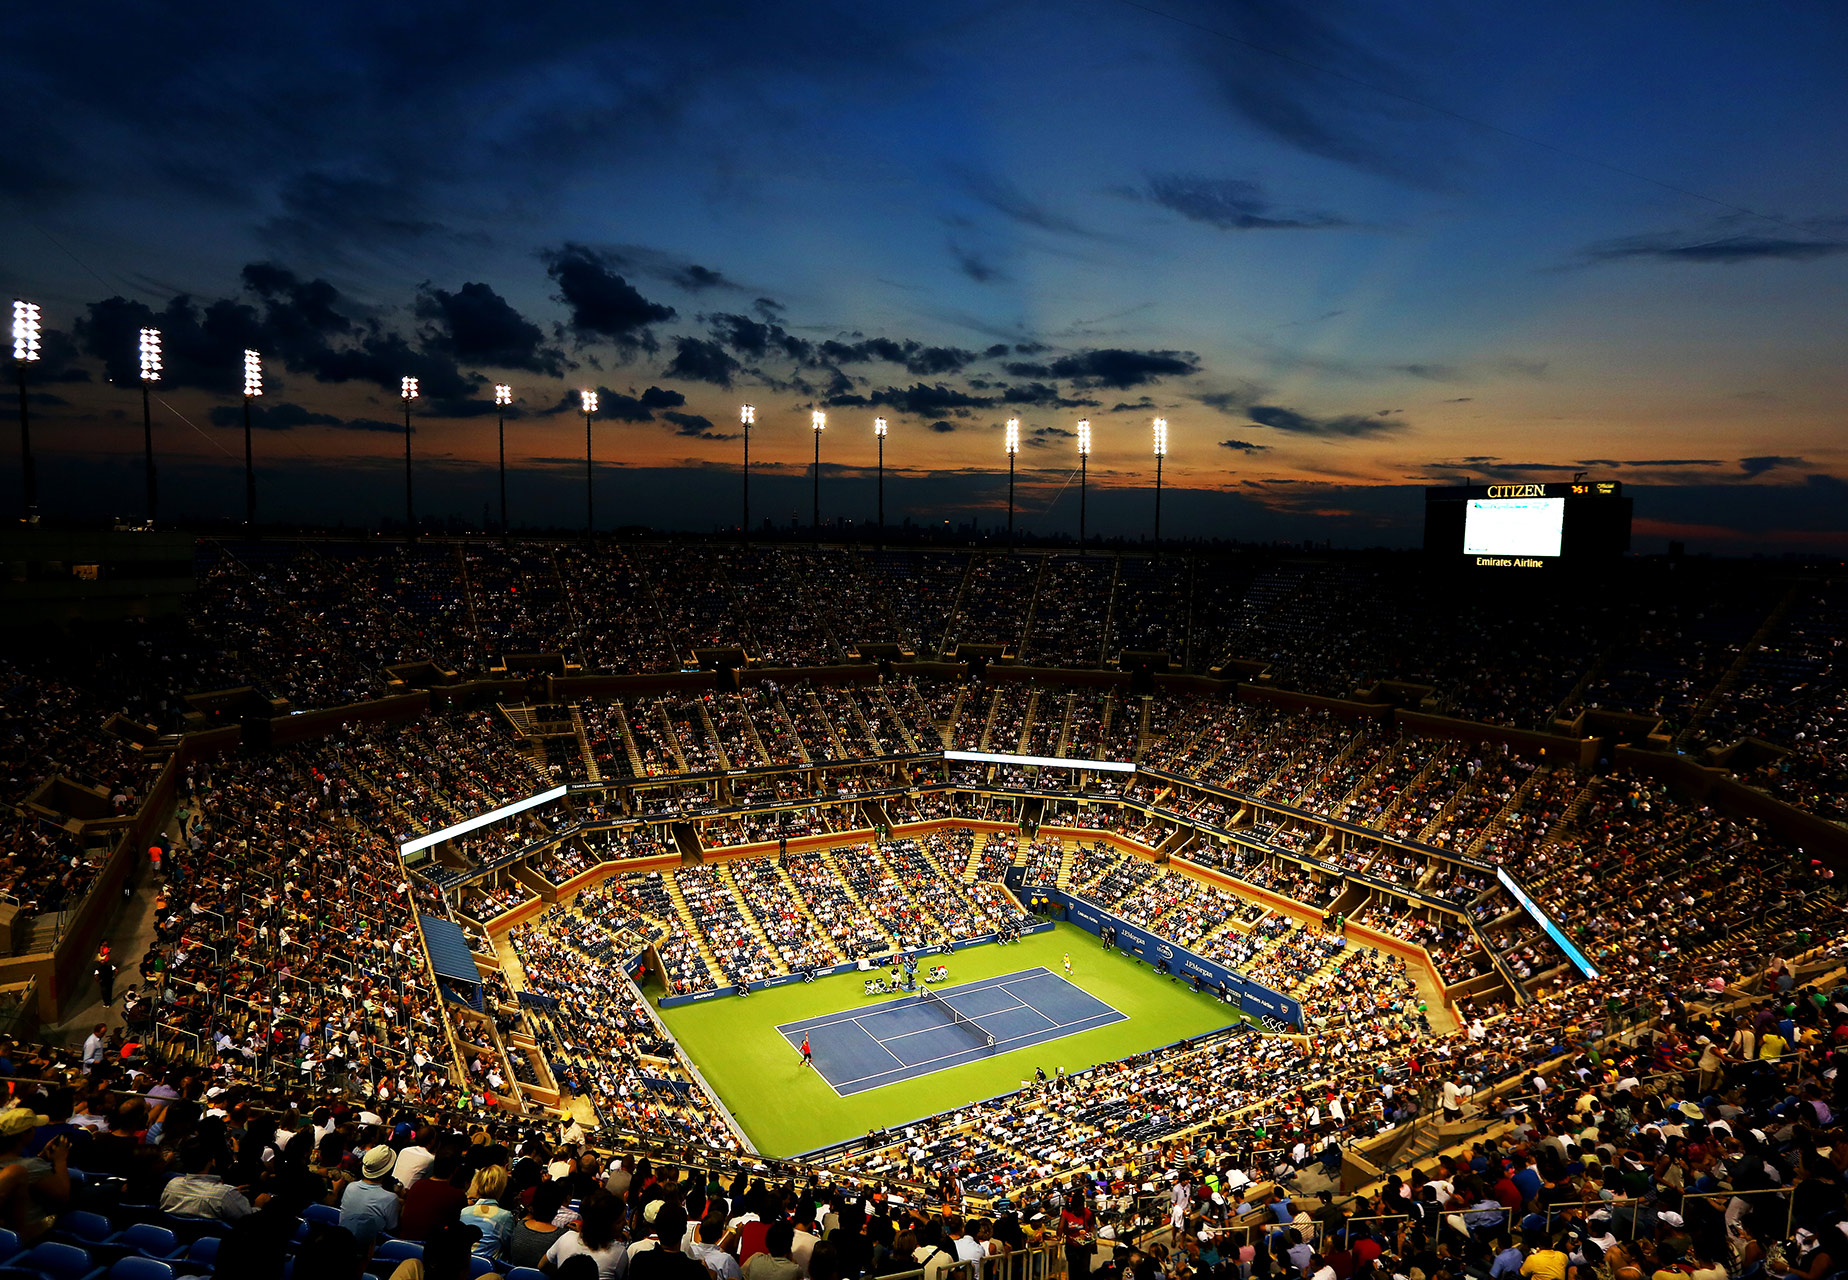 The United States Open Tennis Championships is a hardcourt tennis tournament which is the modern version of one of the oldest tennis championships in the world, the U.S. National Championship, for which men's singles was first contested in 1881.